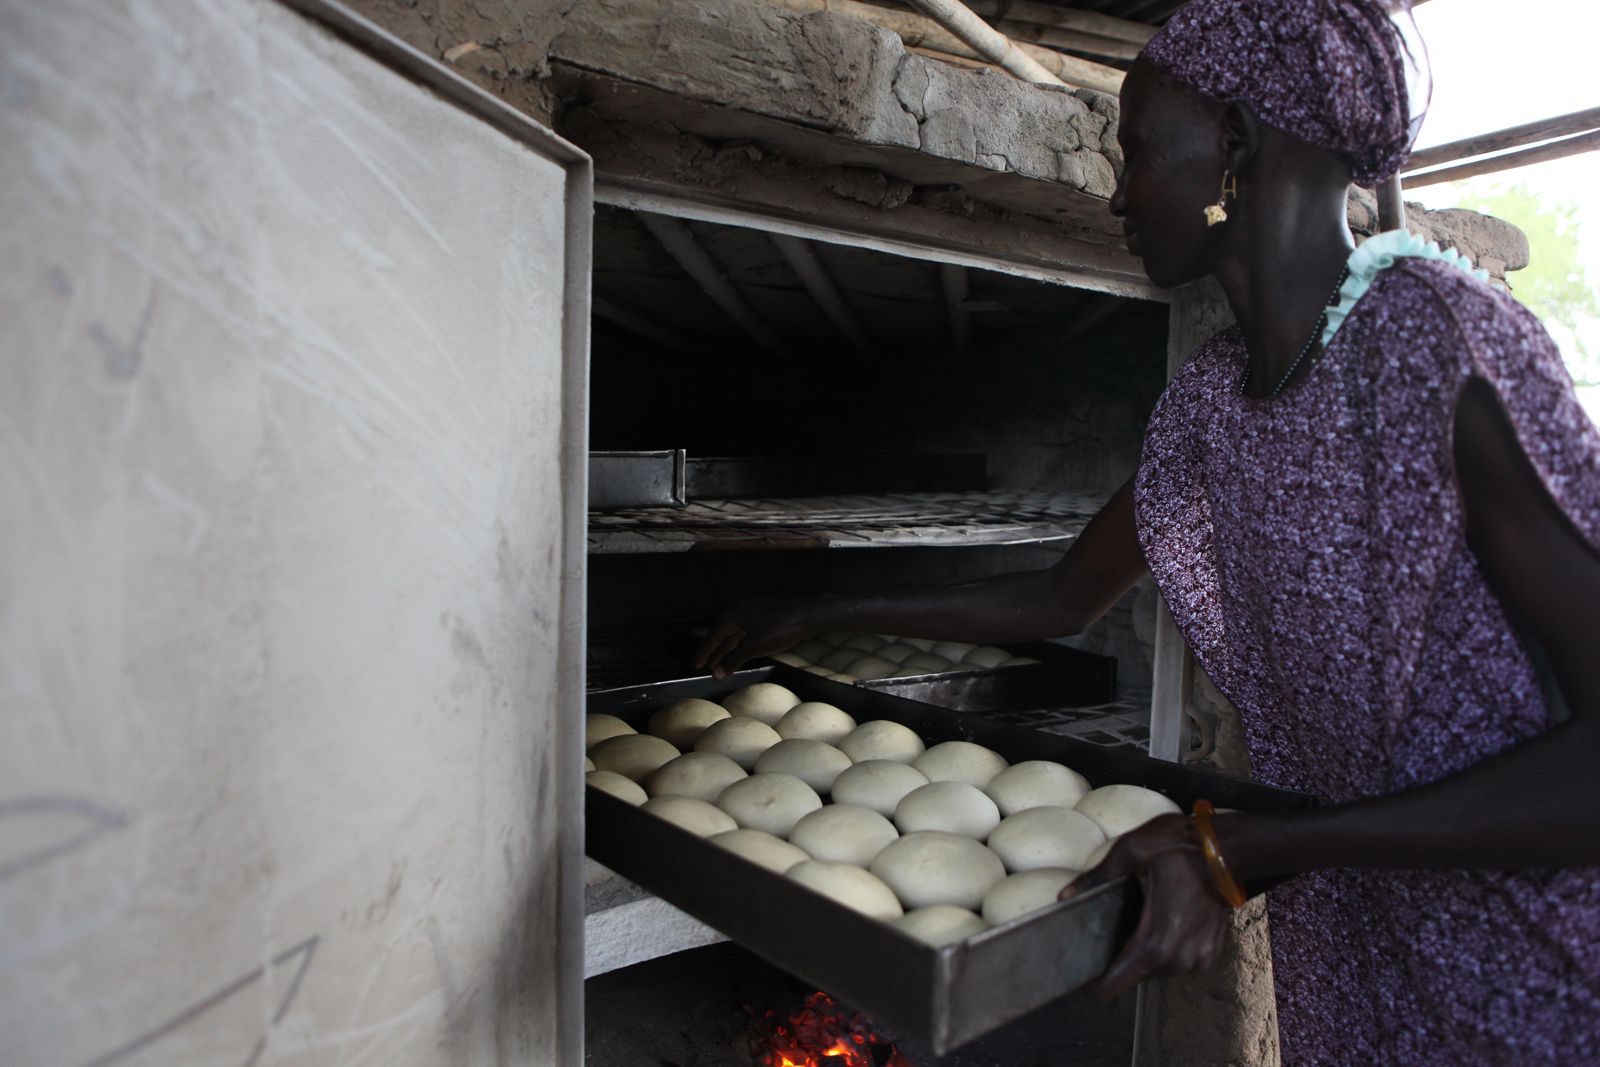 Women for Women International Sudan Chapter is opening a bakery for women from Rumbek East, Lakes State, South Sudan. While the bakery construction is completed, WfWi contracts a local baker to train the women in making donuts, rolls and bread loaves. Mary Ajak Malek puts bread loaves into the charcoal oven.